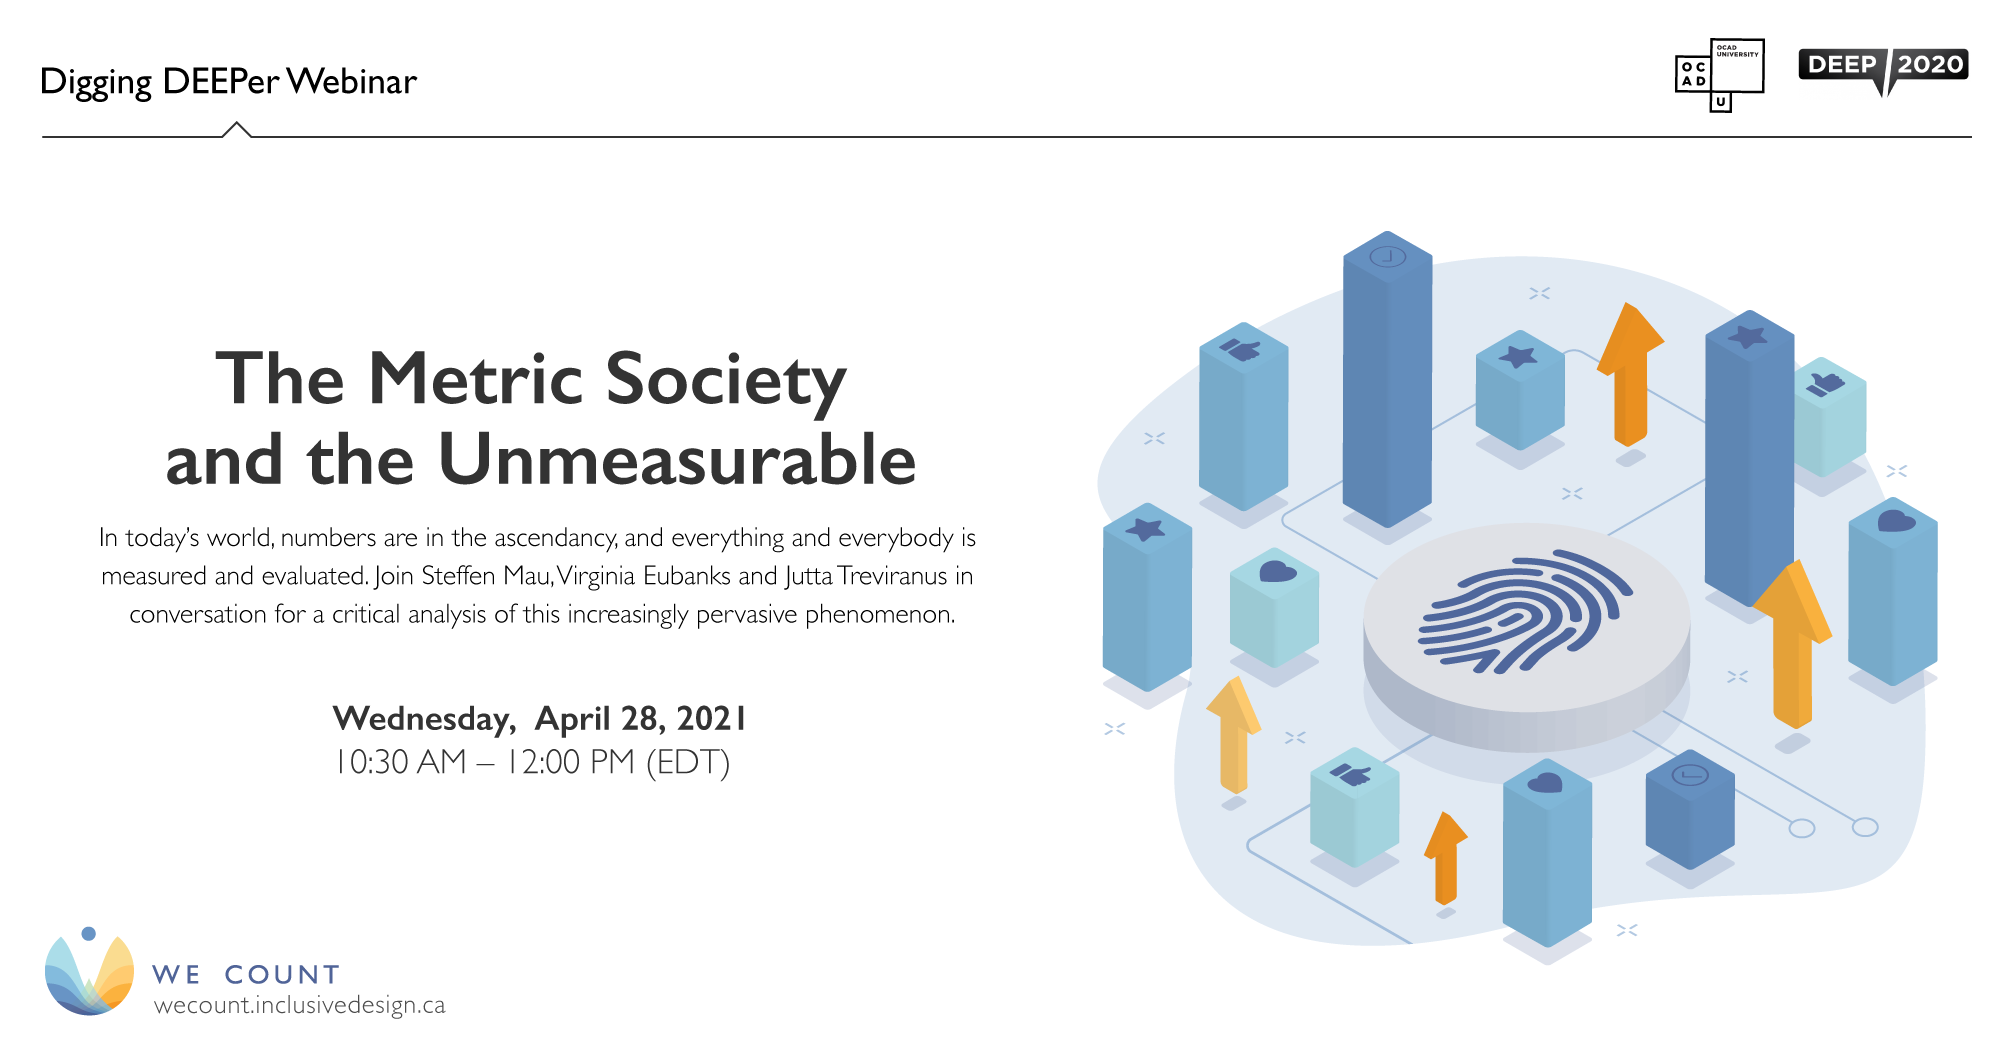 Digging DEEPer Webinar The Metric Society and the Unmeasurable: Wednesday, April 28, 2021, 10:30 AM – 12:00 PM (EDT)